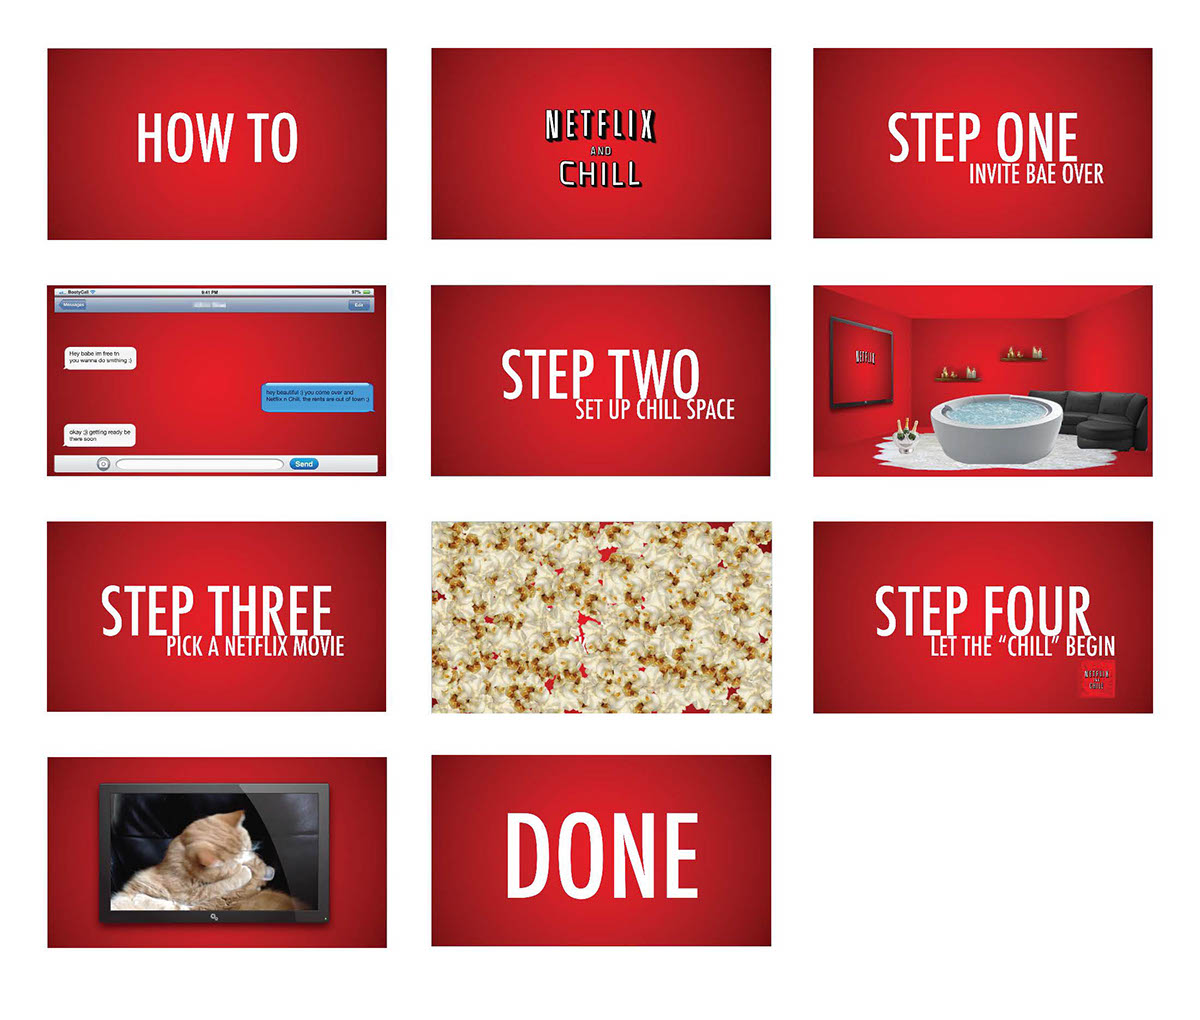 How To: Netflix and Chill on Behance